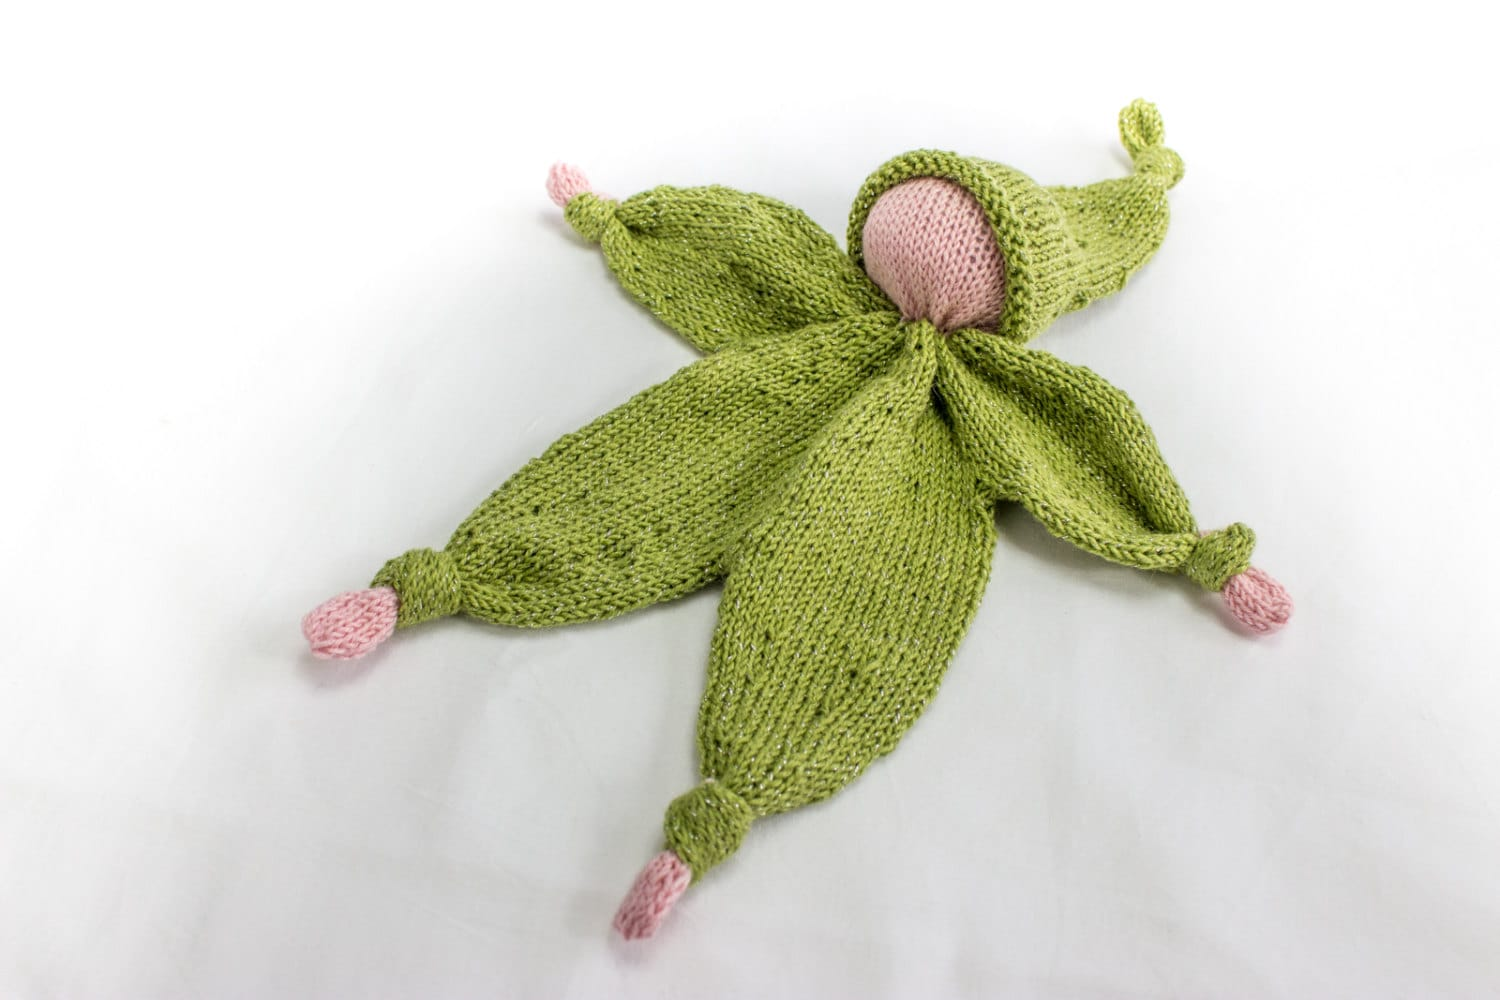 KNITTING PATTERN, Doll, Softies, Lovey Doll, Baby Comforter, Small ...